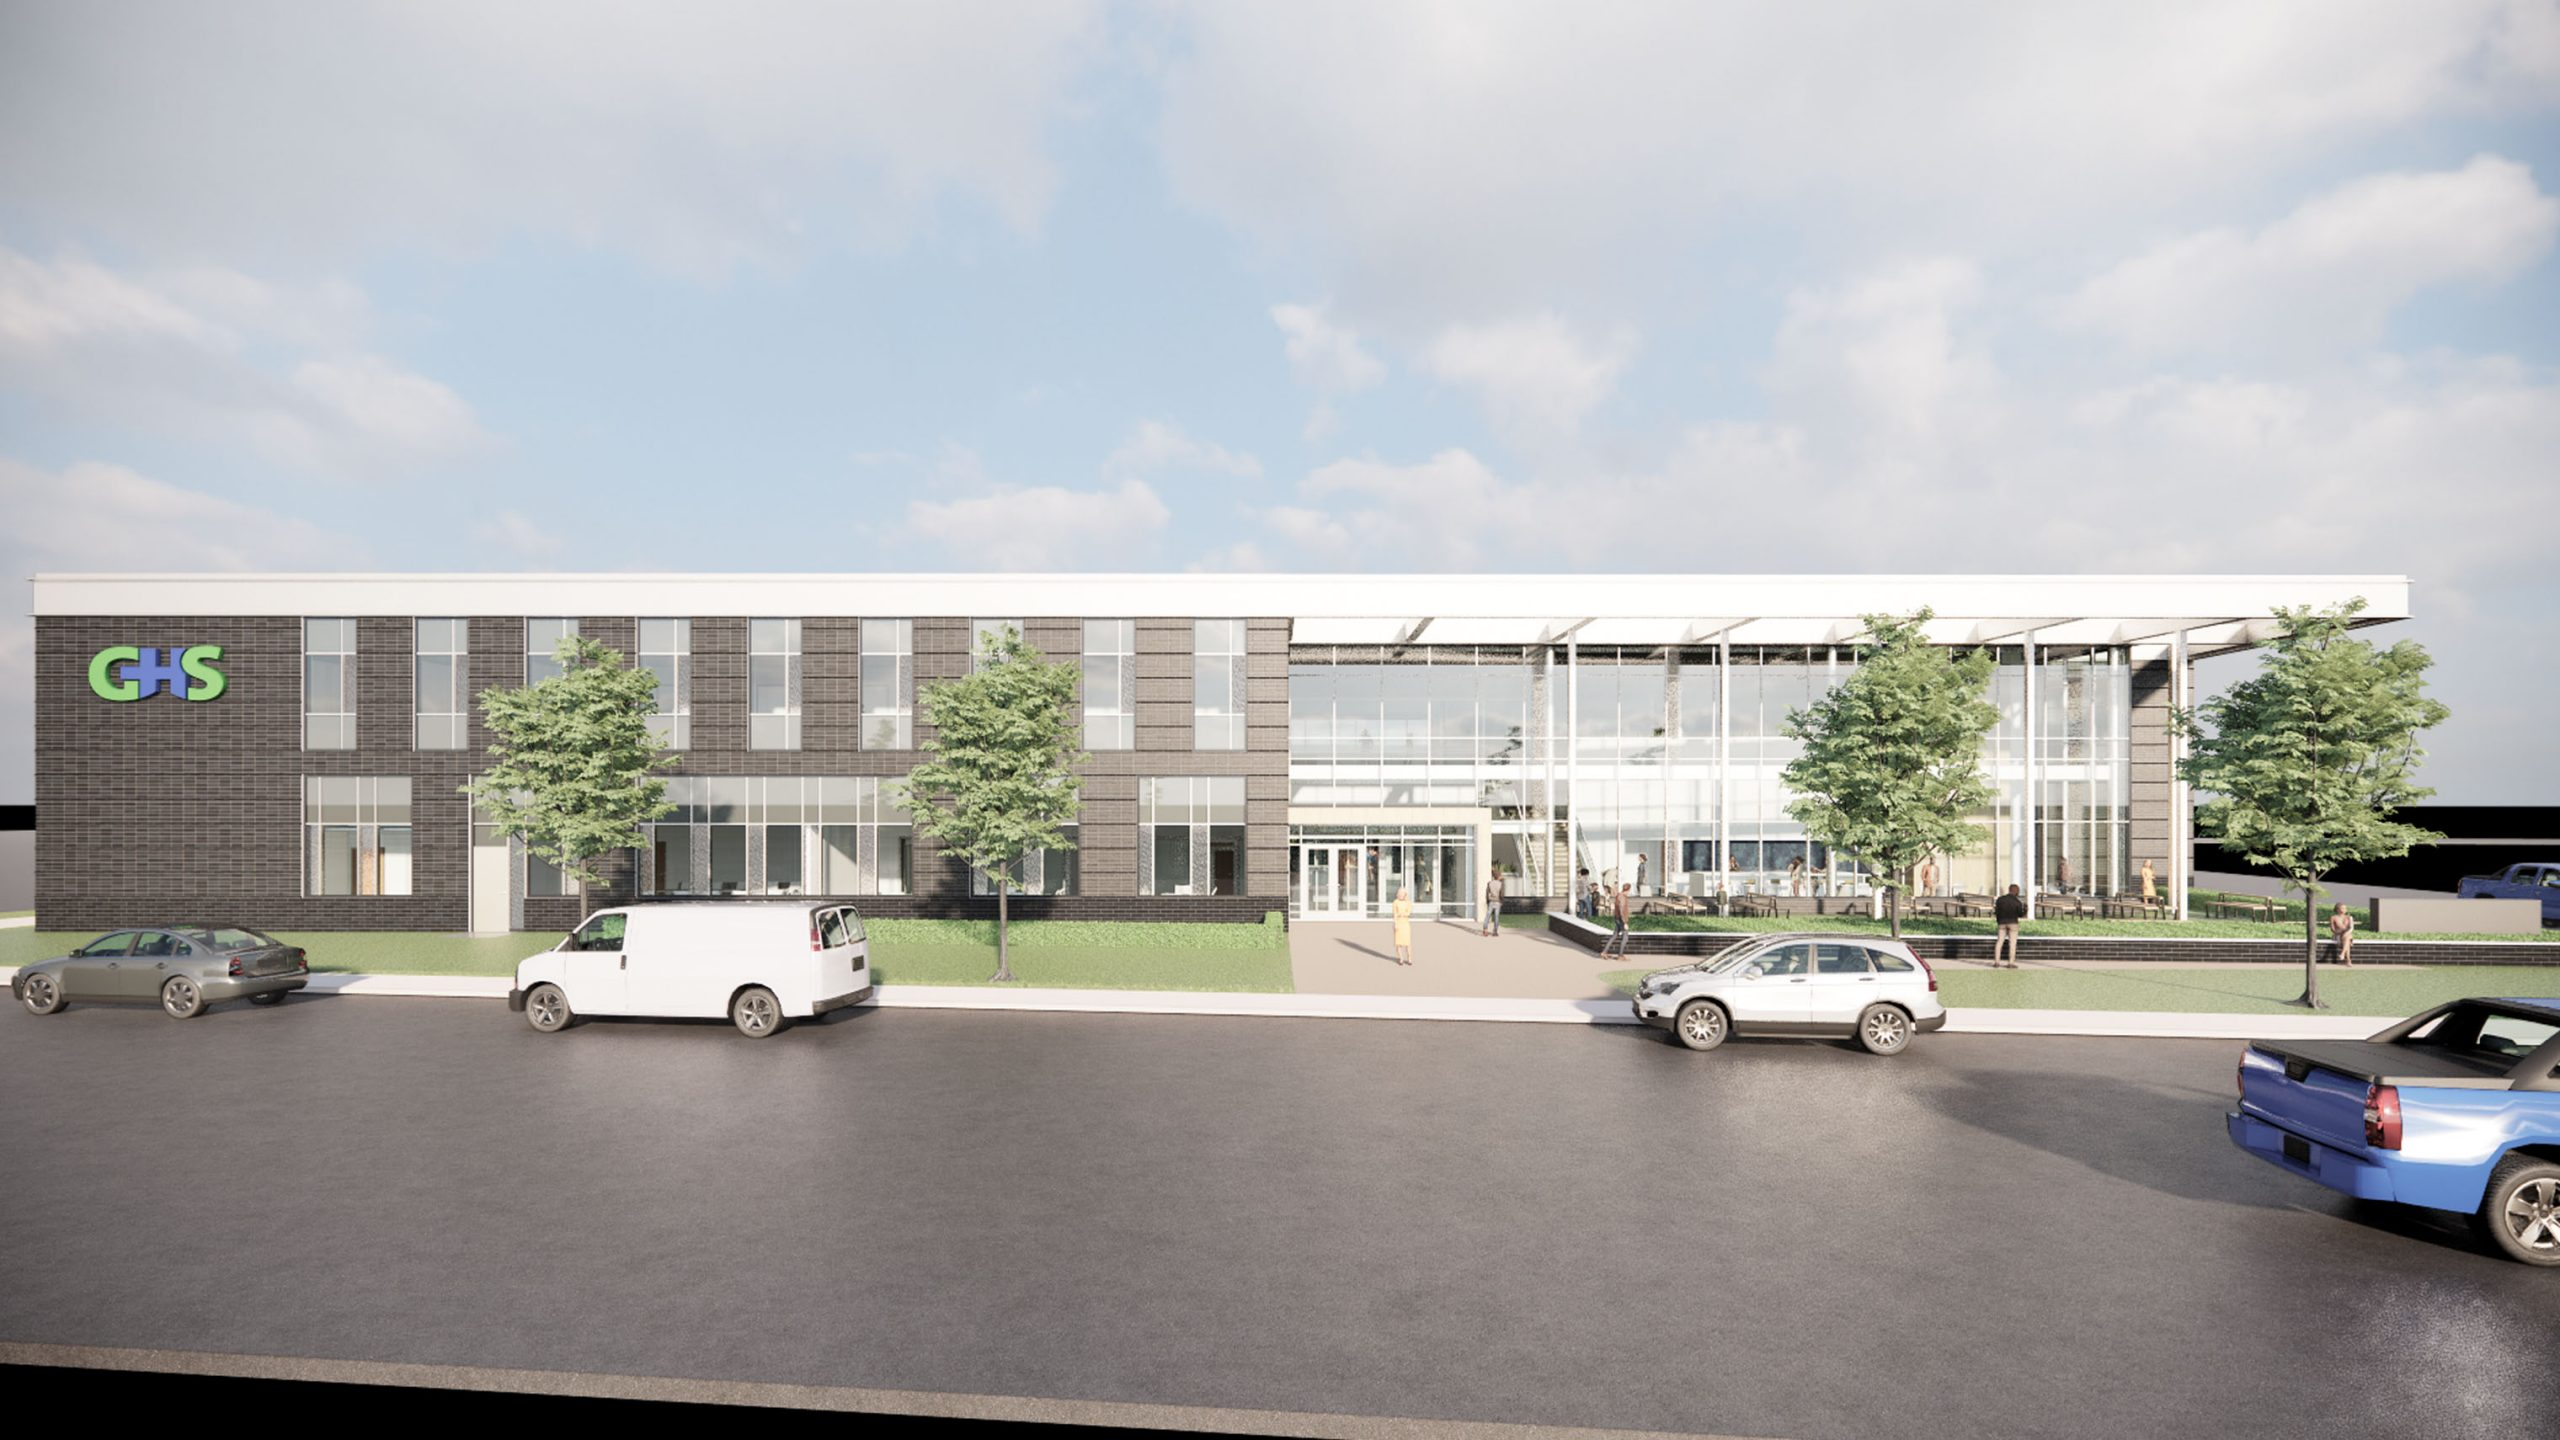 Rendering of the new Genesee Health System building